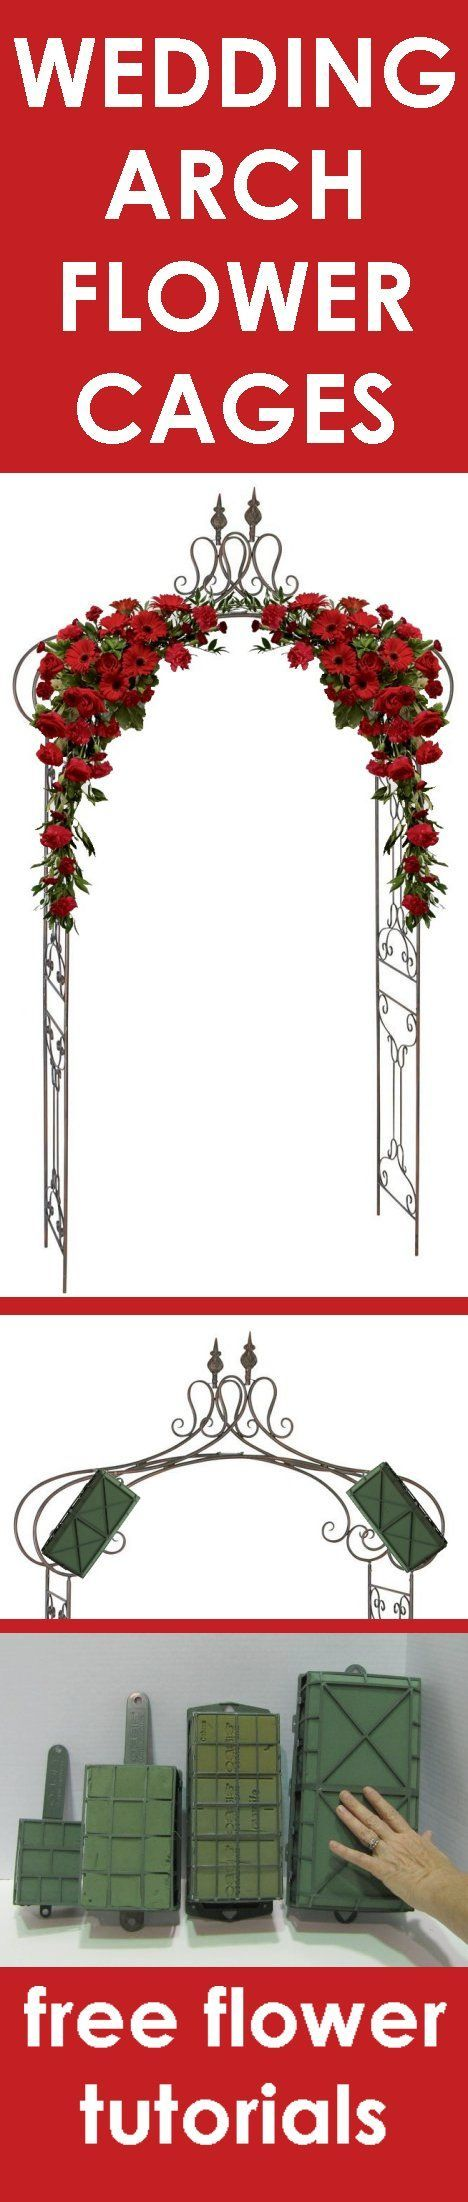 Wedding Flower Arch - Easy Step by Step Flower Tutorials Learn how to make bridal bouquets, wedding corsages, church decorations, pew ends, and reception centerpieces. Buy wholesale flowers and discount florist supplies.